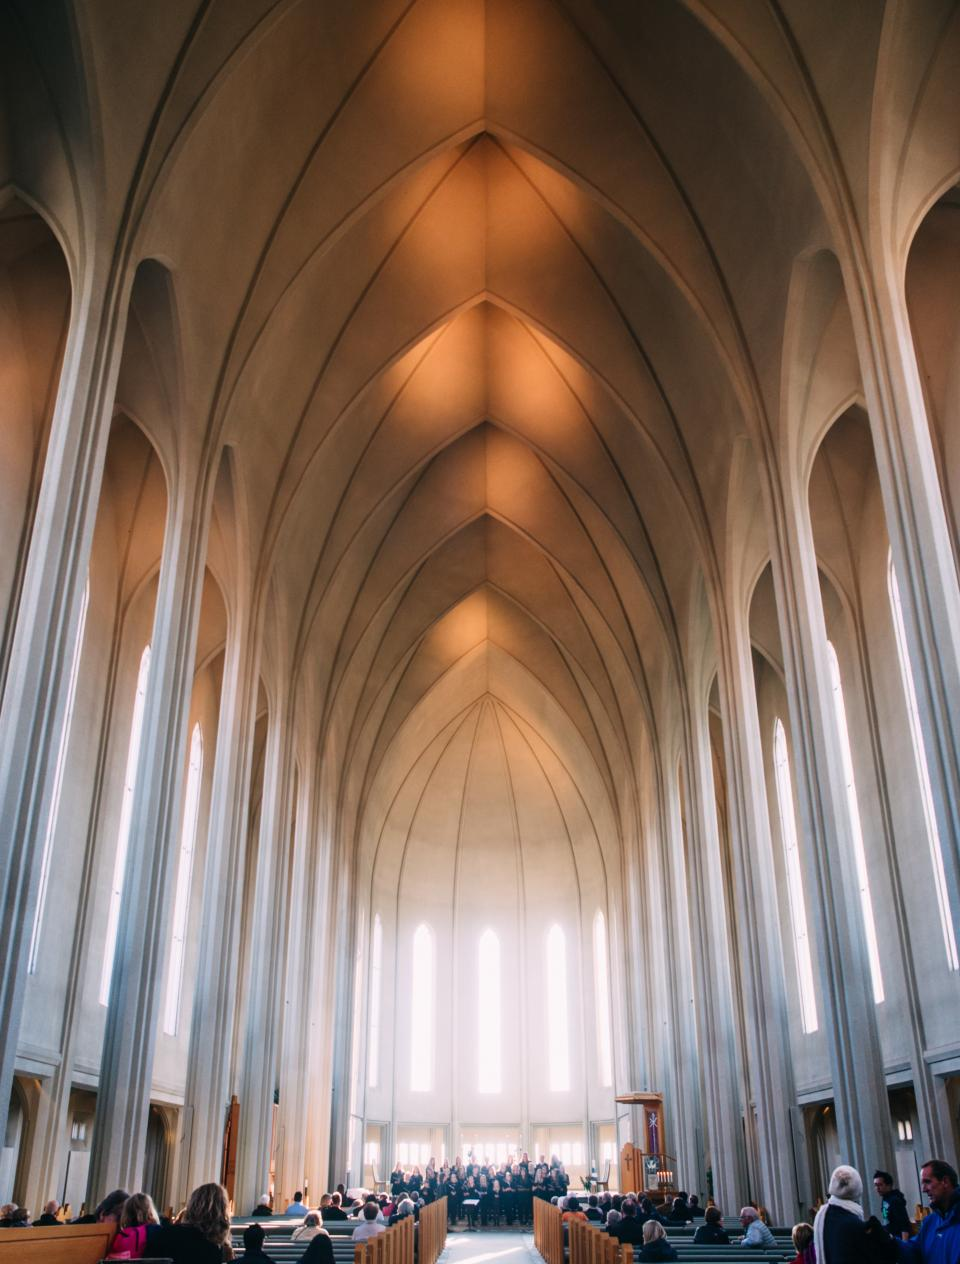 church, ceiling, arches, windows, choir, priest, sermon, benches, cross, holy, christian, catholic, religion